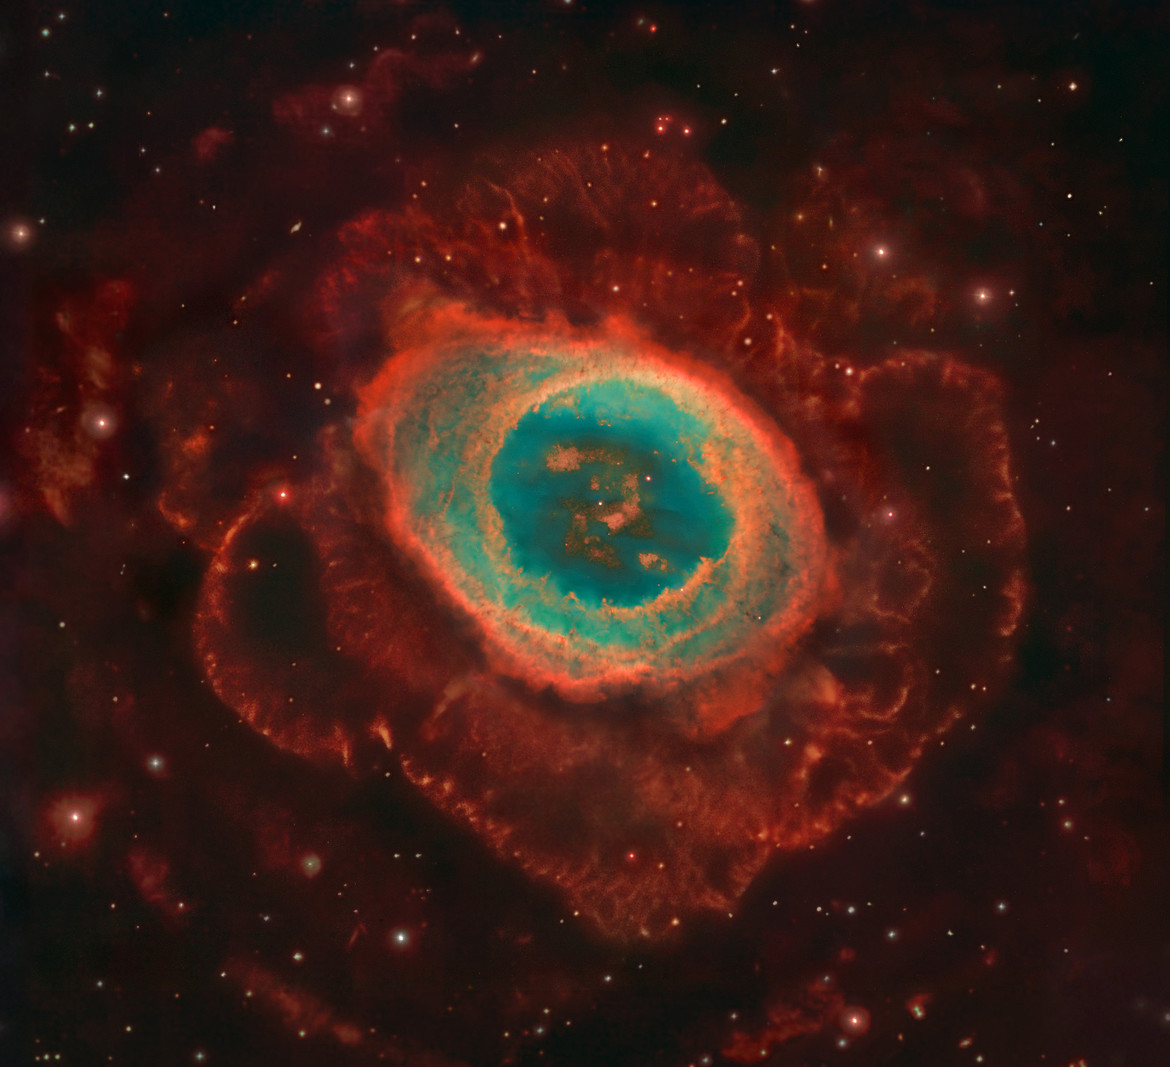 The glorious Ring Nebula, one of the finest examples of a dying star in the sky. Credit: NASA, ESA, and C. R. O'Dell (Vanderbilt University) and Robert Gendler